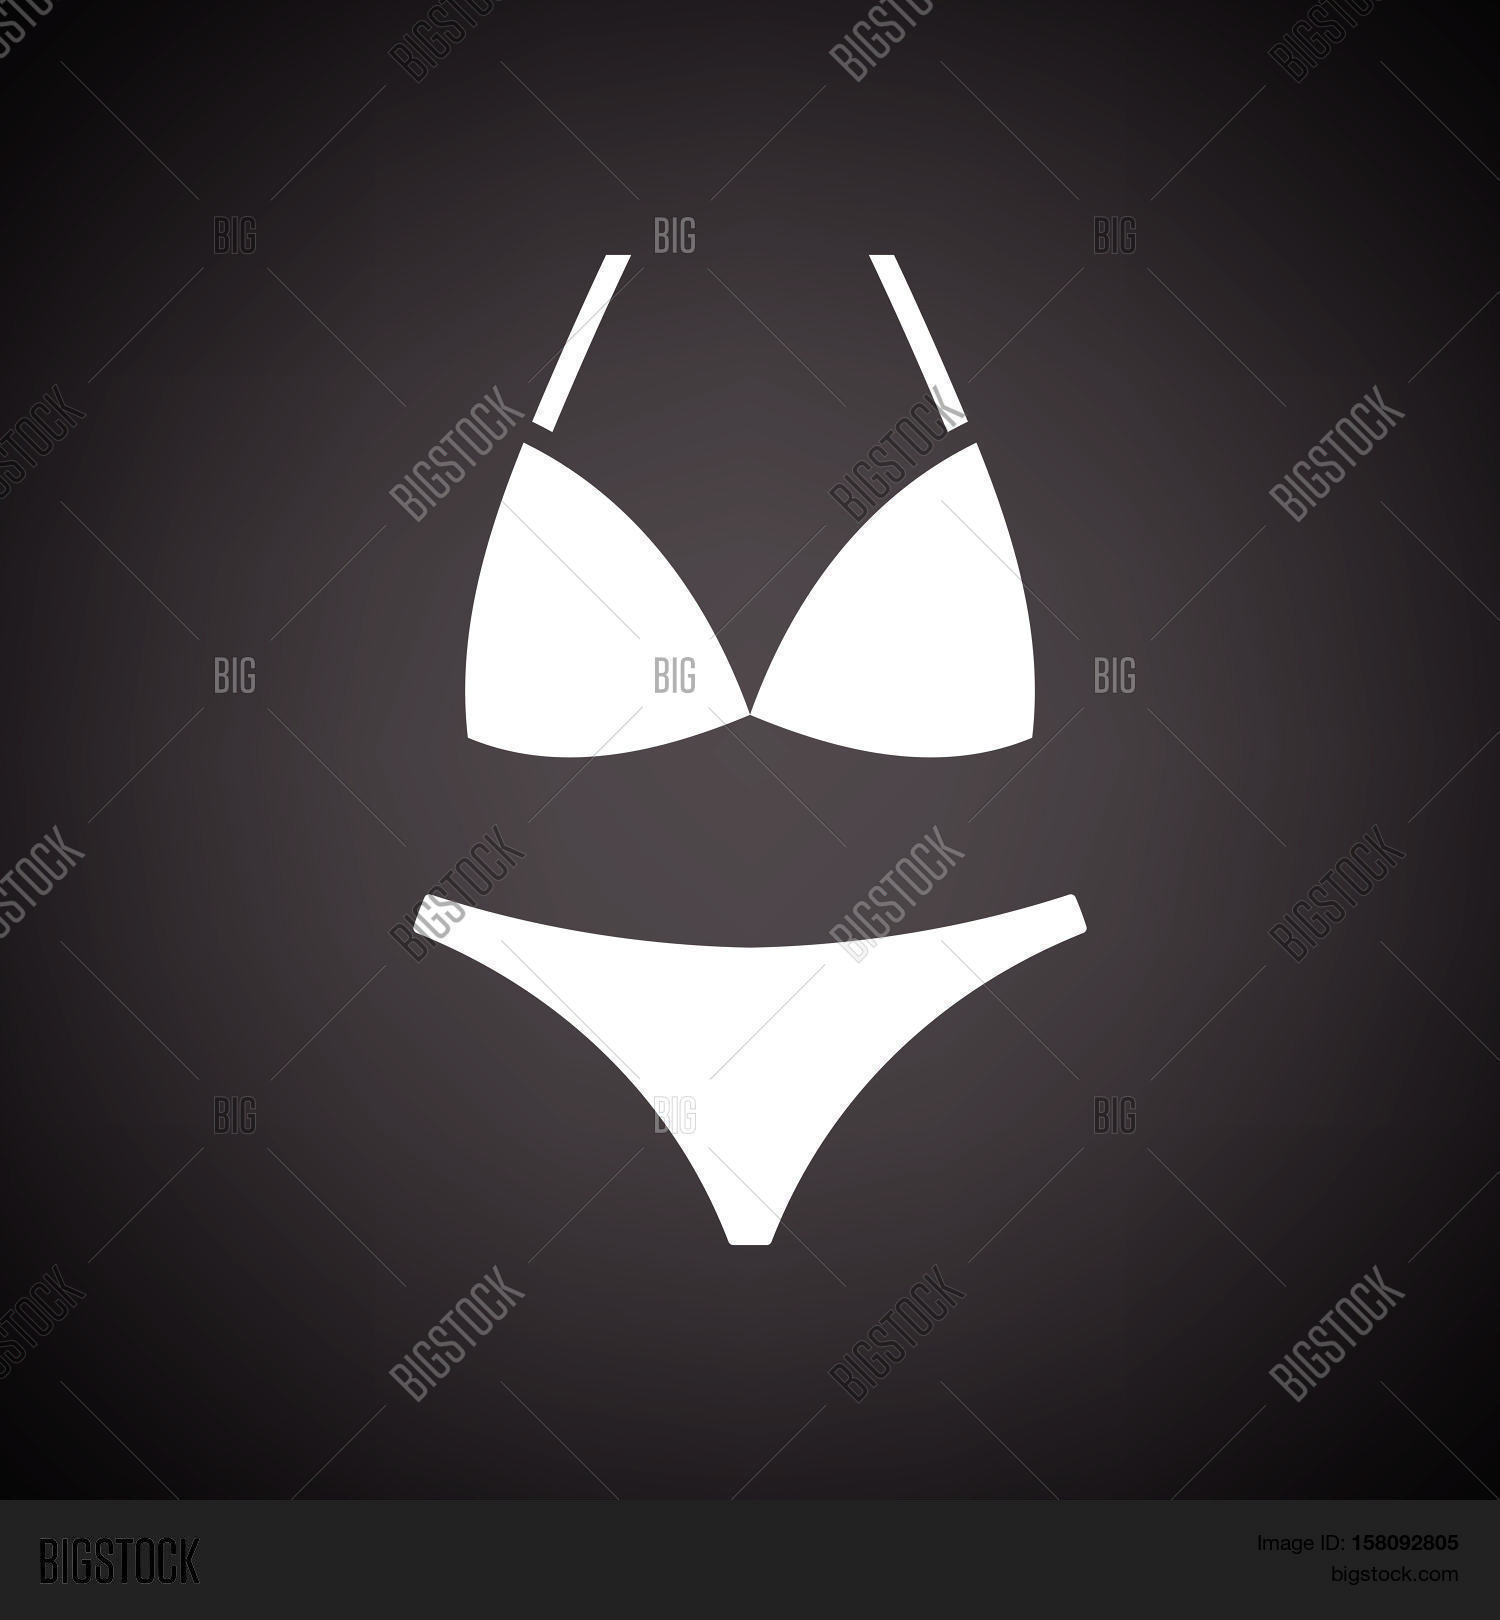 lingerie,bikini,underwear,bra,swimsuit,brassiere,illustration,undergarment,fashion,swimwear,vector,shopping,clothing,icon,clipart,top,sale,garment,clothe,summer,store,beach,breast,business,symbol,shop,panties,wear,label,swim,beachwear,string,isolated,measurement,cleavage,outline,symmetrical,shoulder,enhance,app,single,stencil,white,black